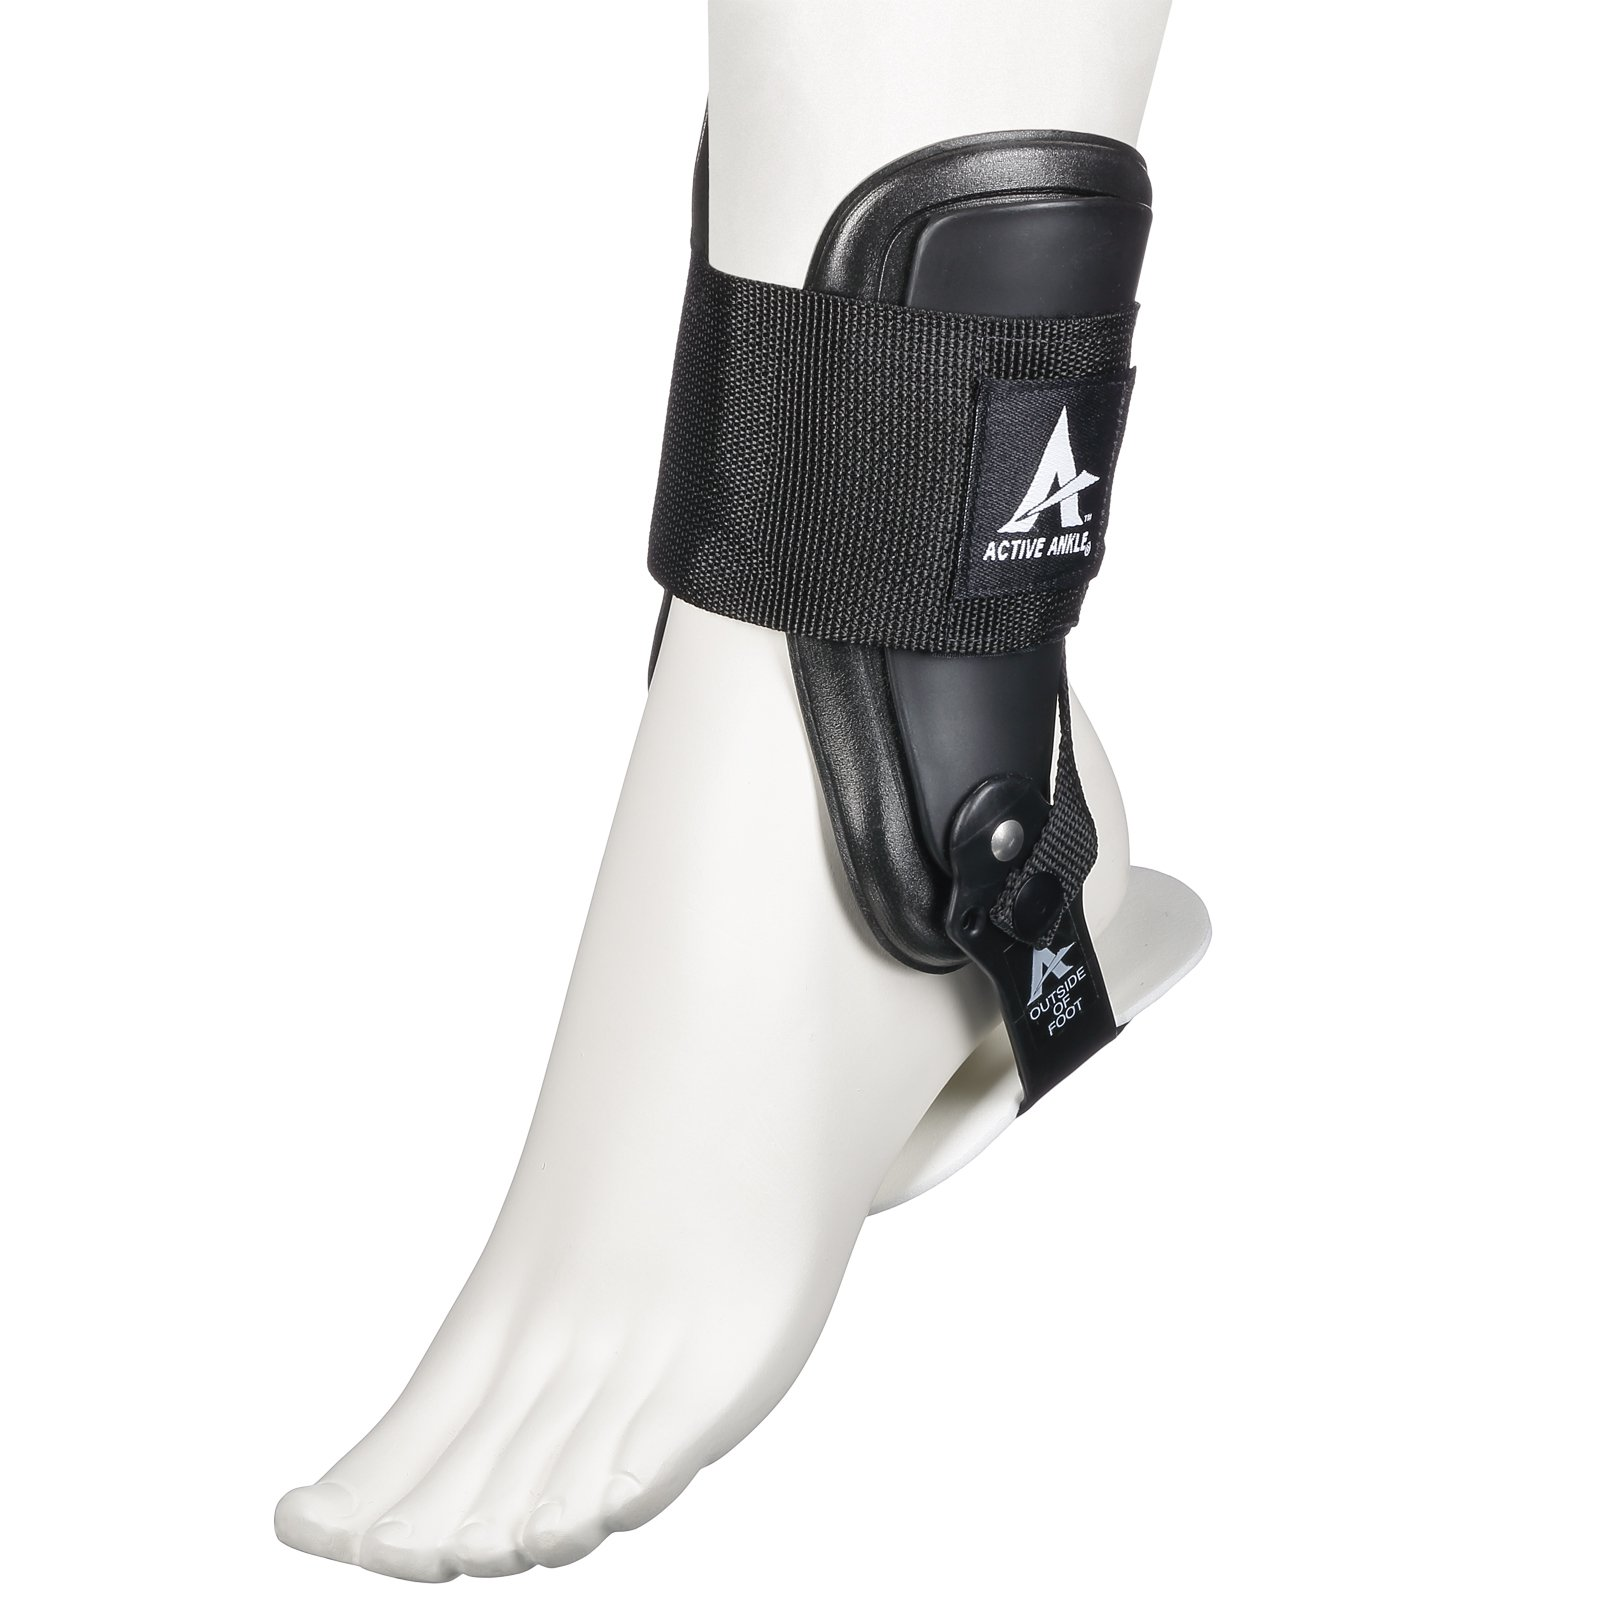 Active Ankle T2 Ankle Brace, Rigid Ankle Stabilizer for Protection & Sprain Support for Volleyball, Cheerleading, Ankle Braces to Wear Over Compression Socks or Sleeves for Stability, Black